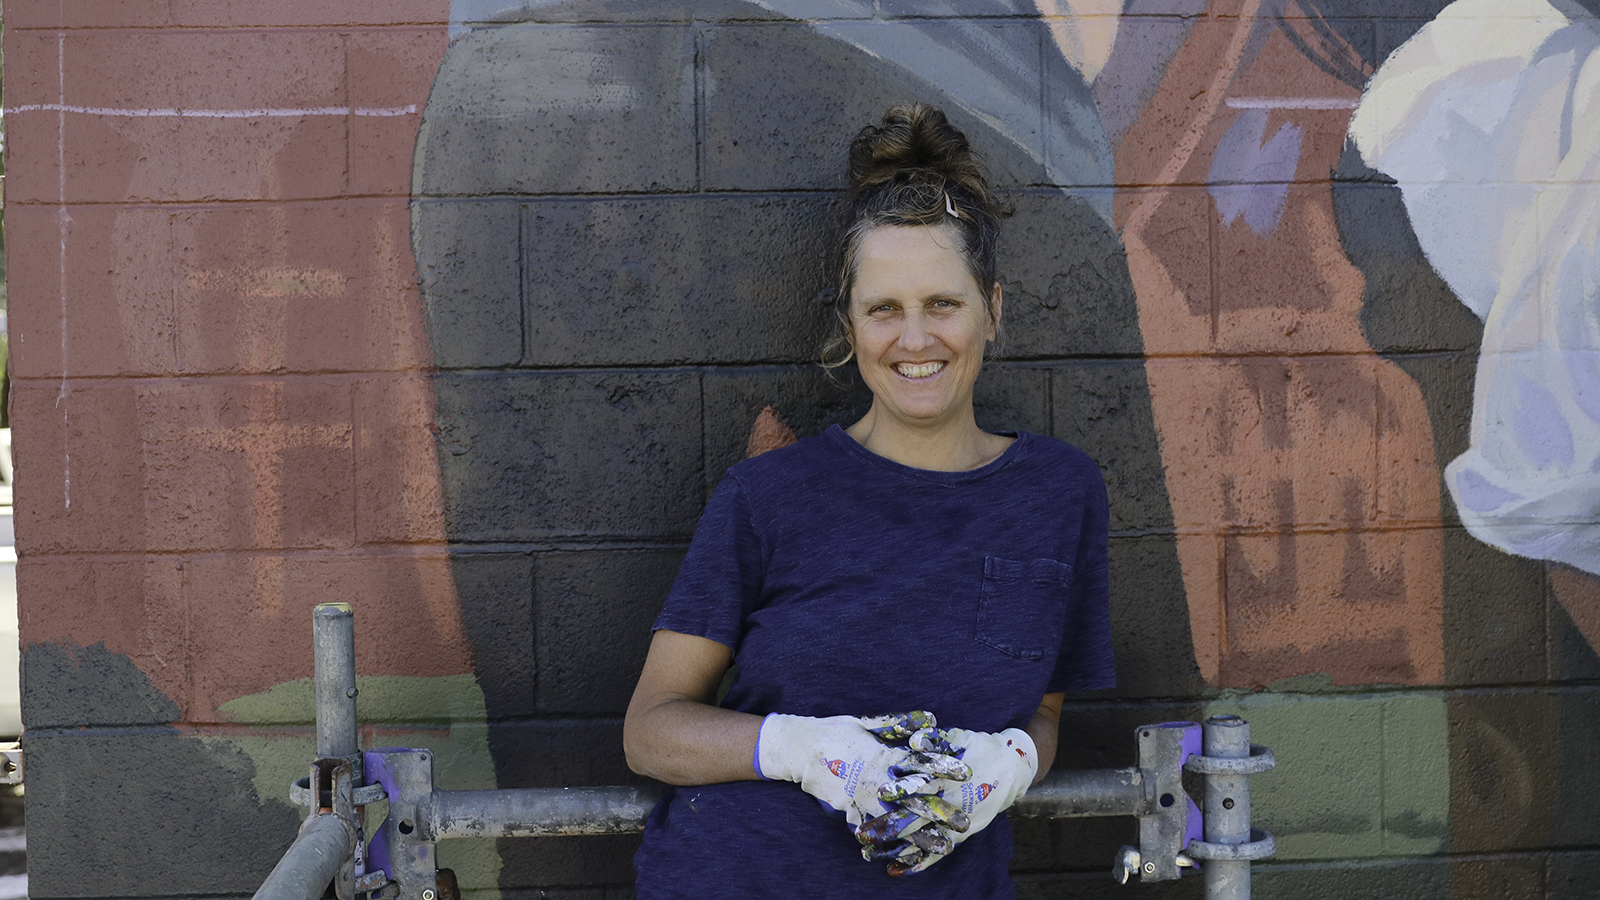 Kari Johnson during Eugene Walls 2019, part of the 20x21 EUG Mural Project.